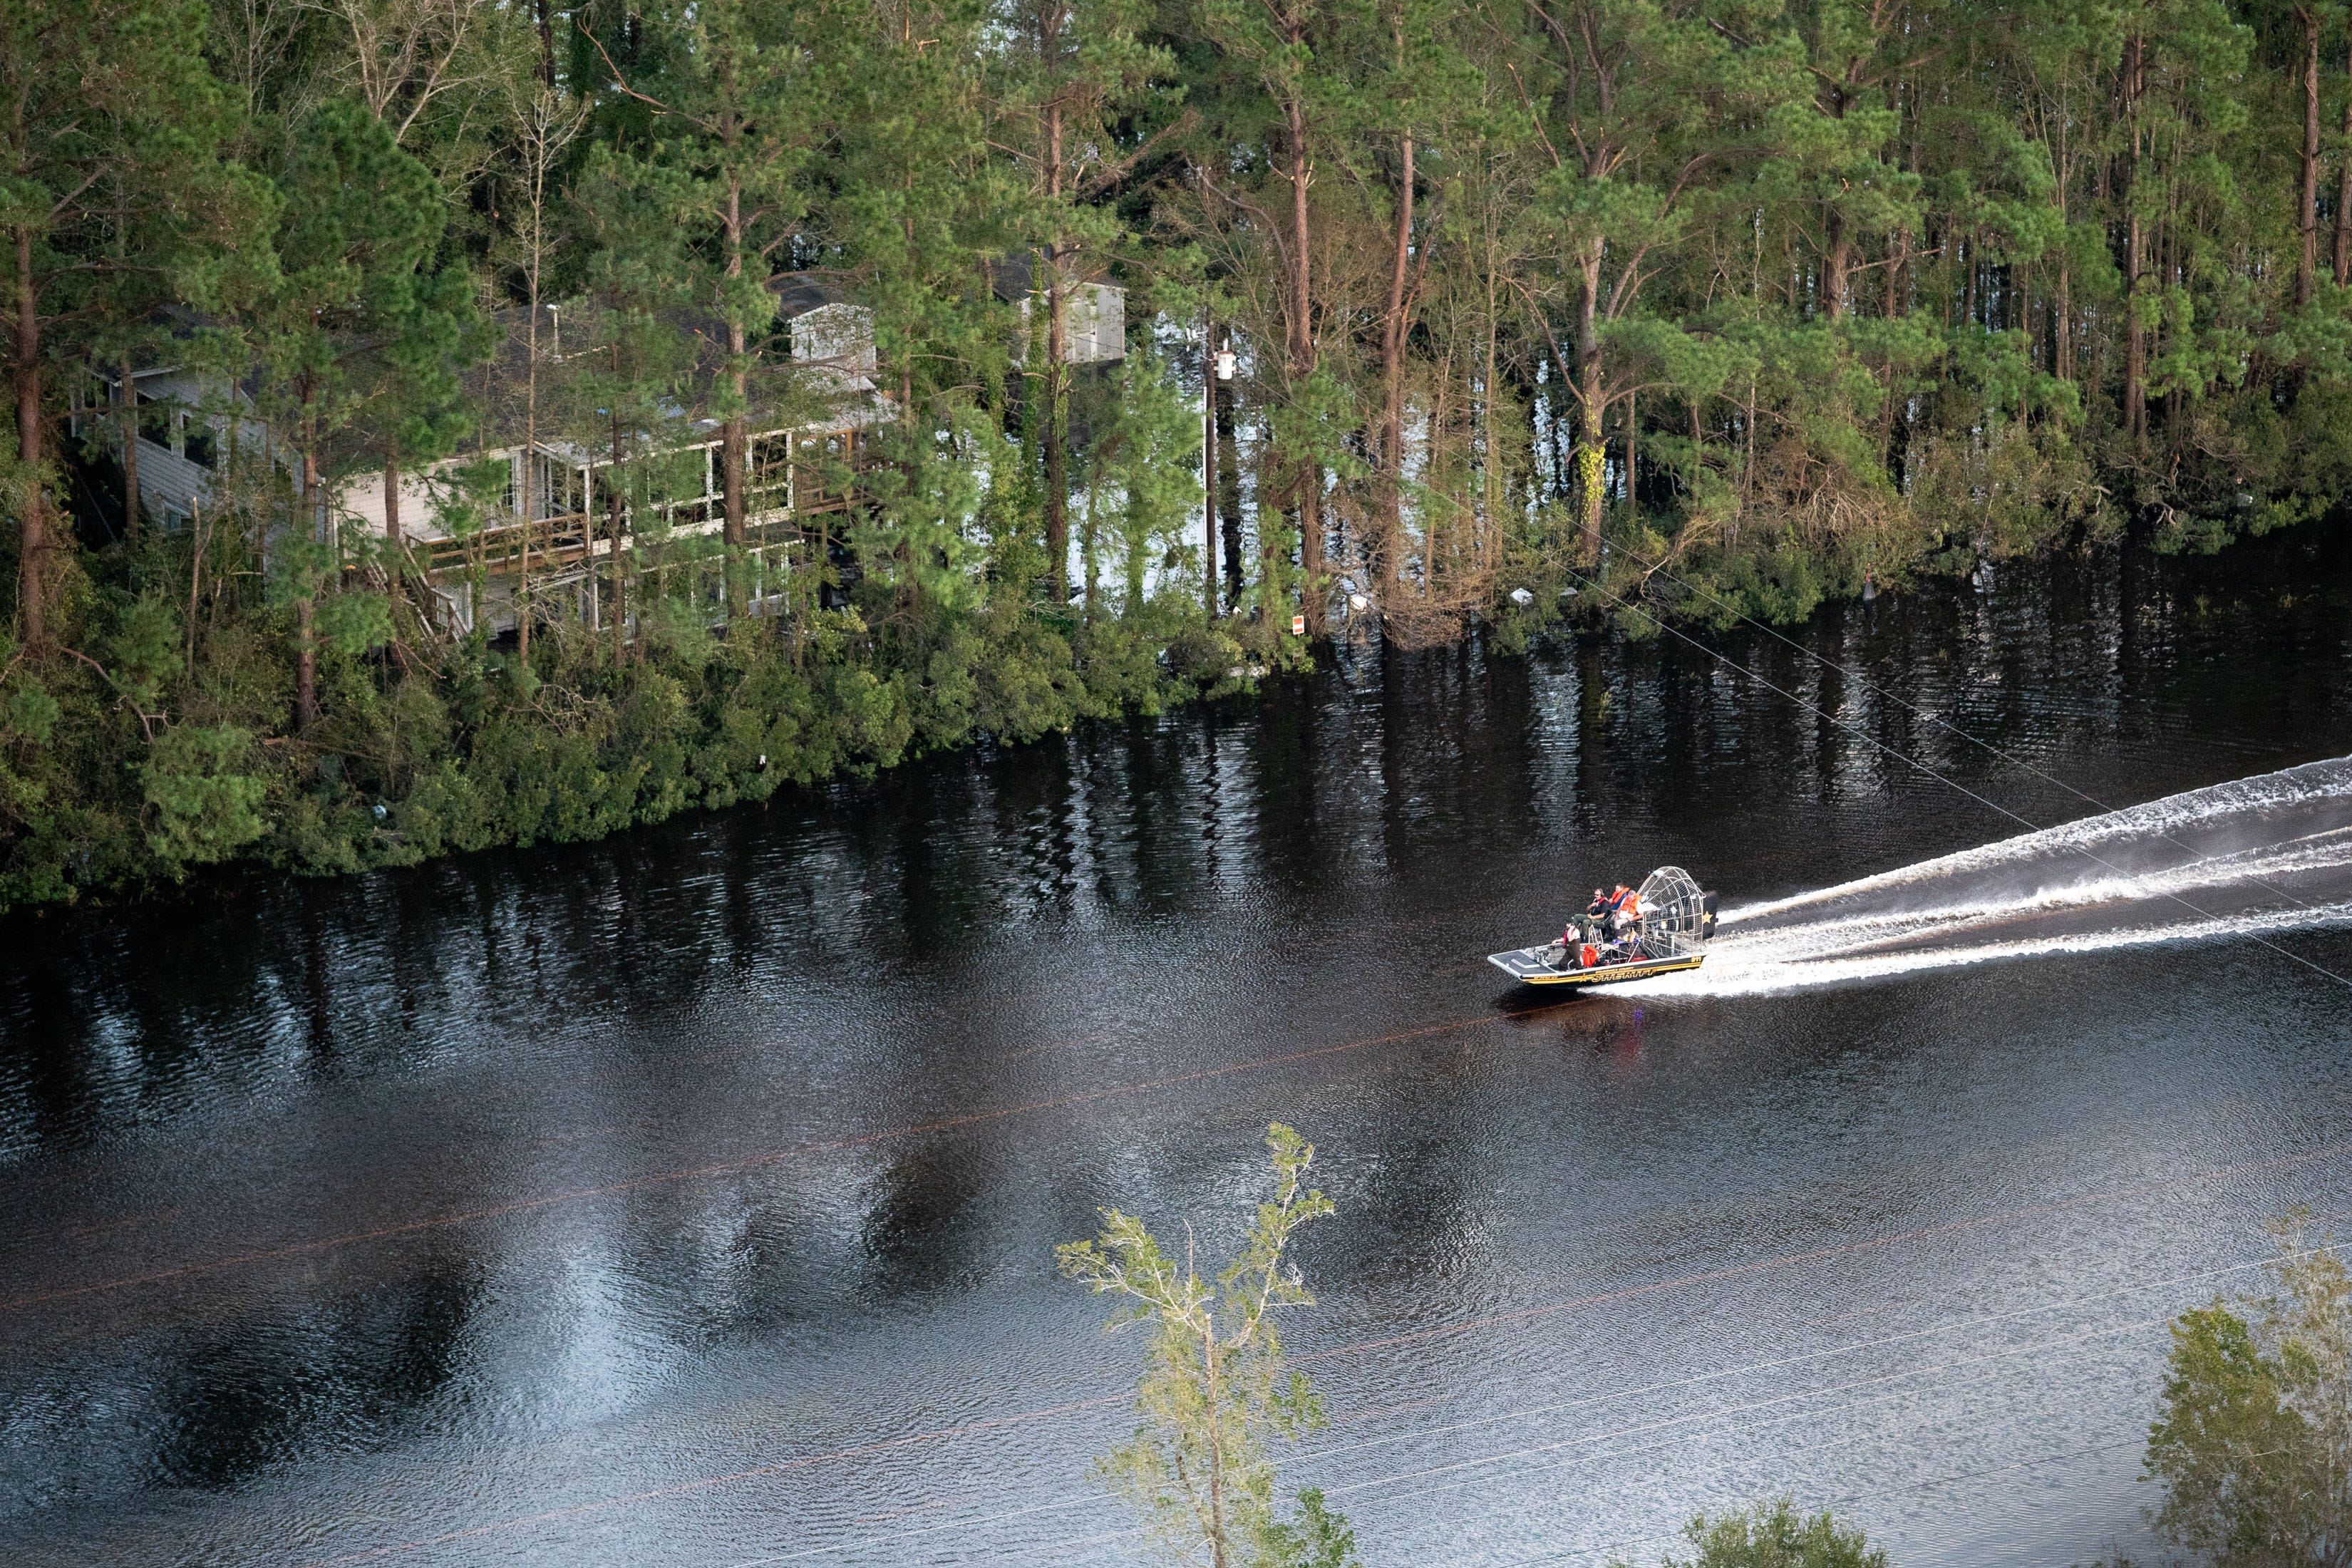 A boat speeds down the flooded U.S. 17, as seen from a Coast Guard helicopter, in Brunswick County, N.C., on Sept. 17, 2018.